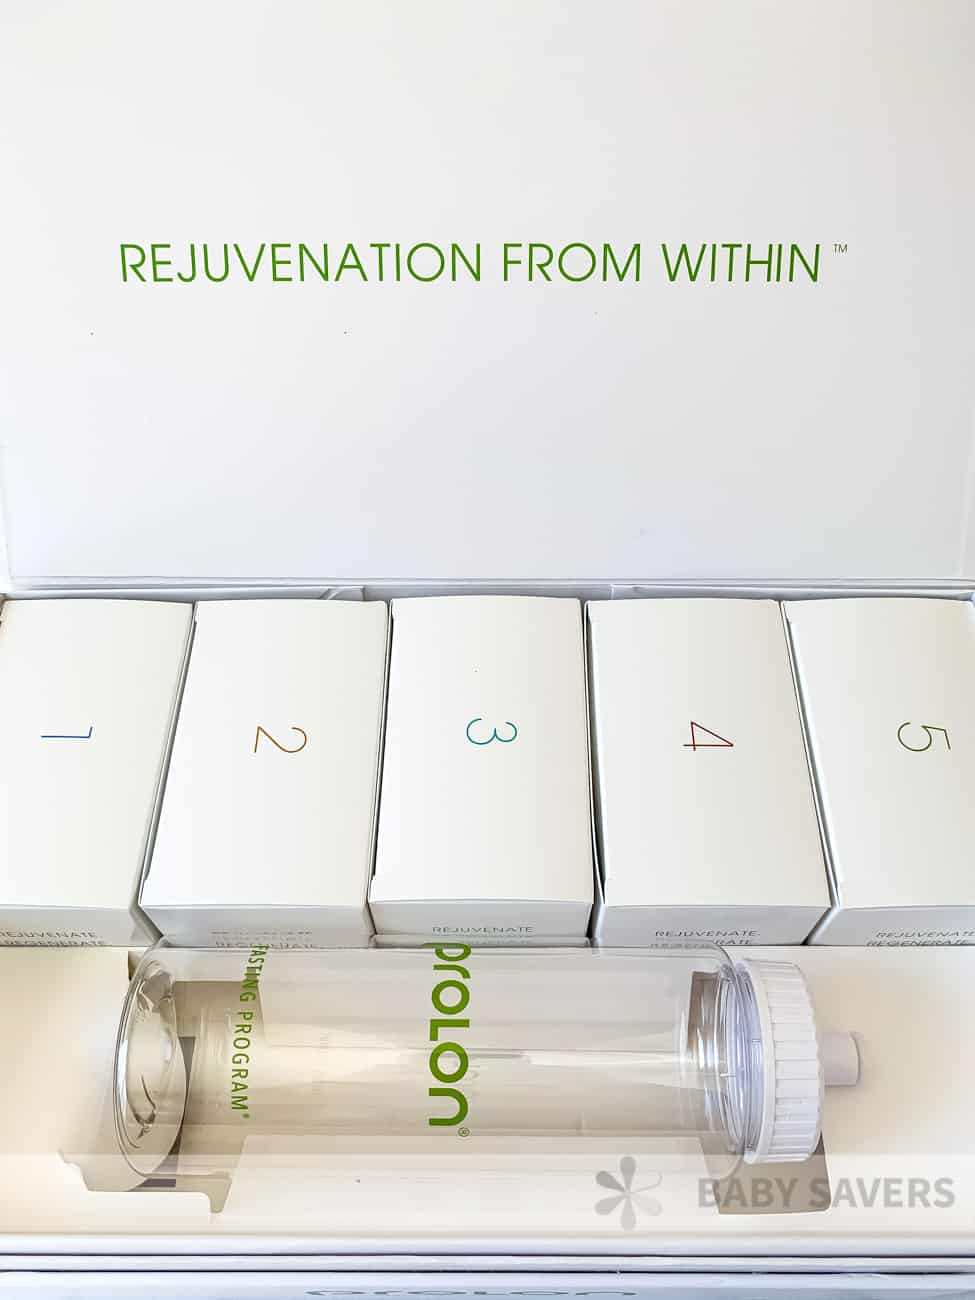 Prolon reviews: everything in the 5 day prolon fasting diet box with a water water bottle